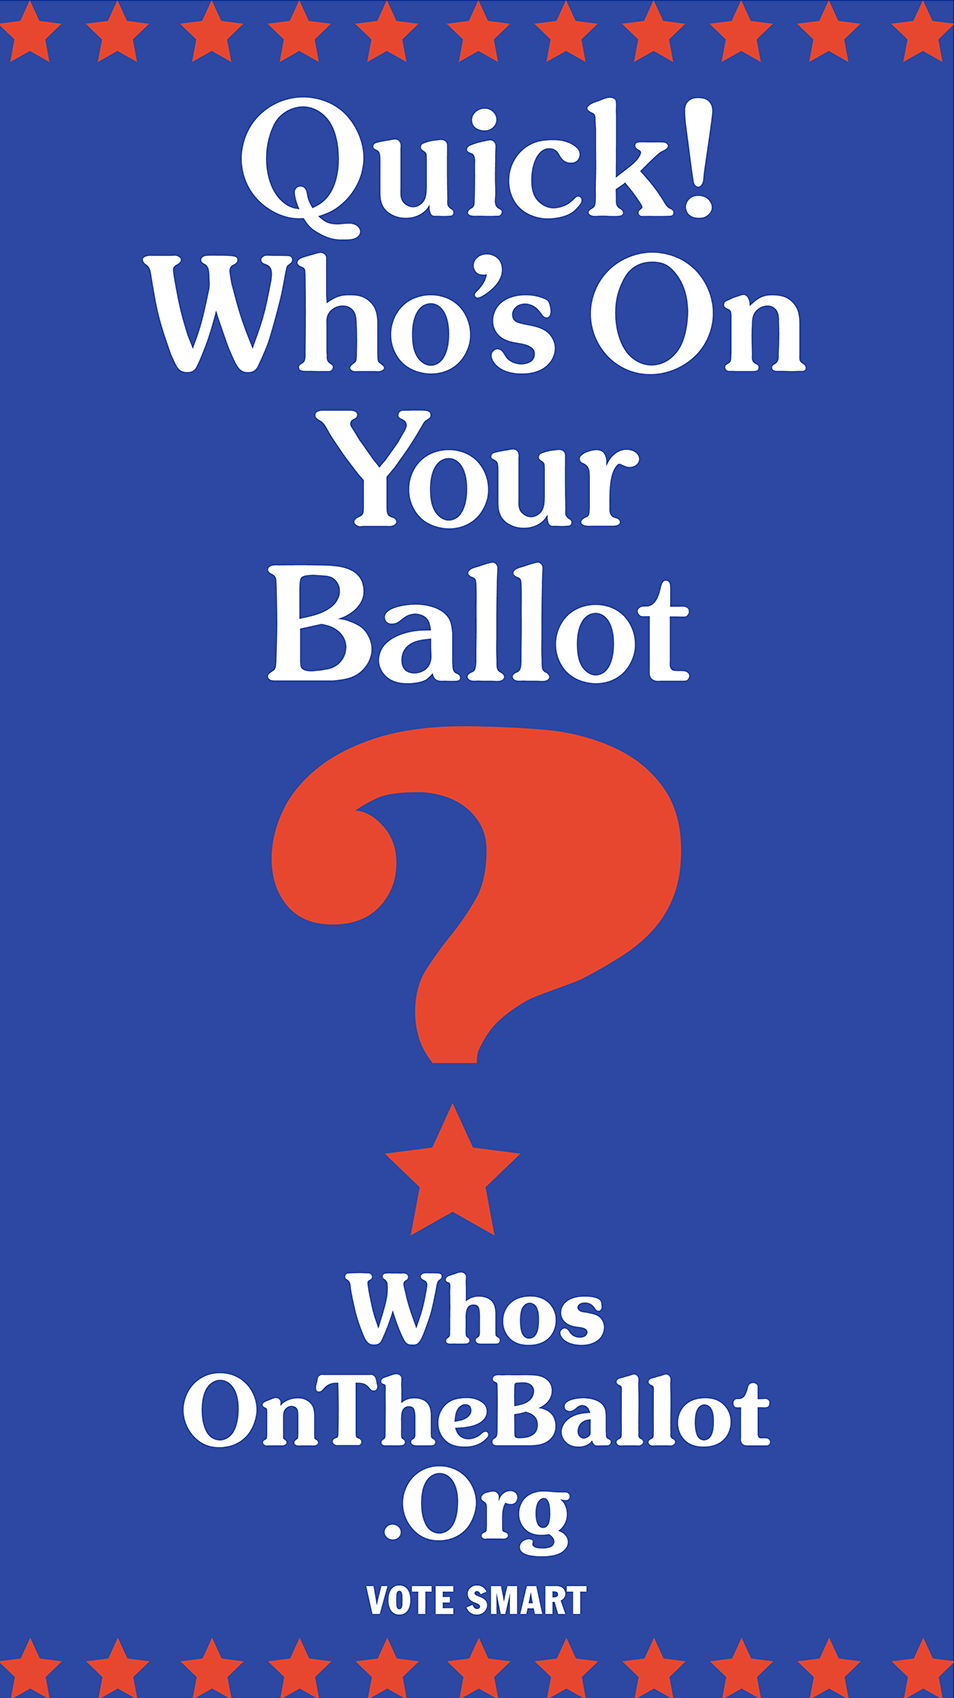 Digital Campaign for Voting Incentive Who's on the Ballot